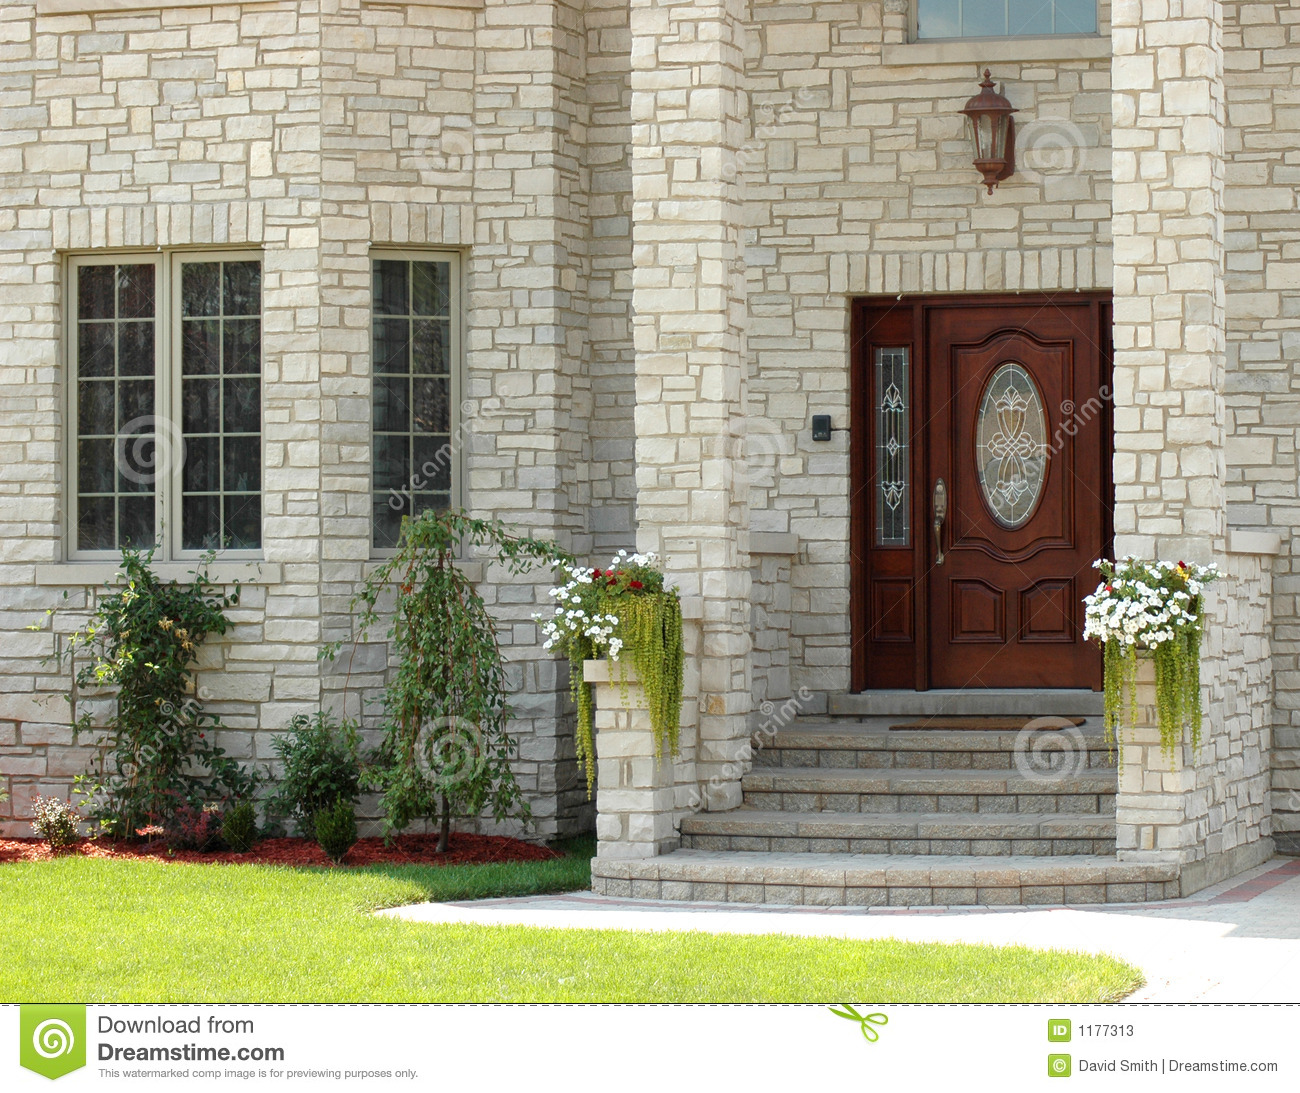 Pictures For House: Elegant House Entrance 3 Stock Image. Image Of Bushes